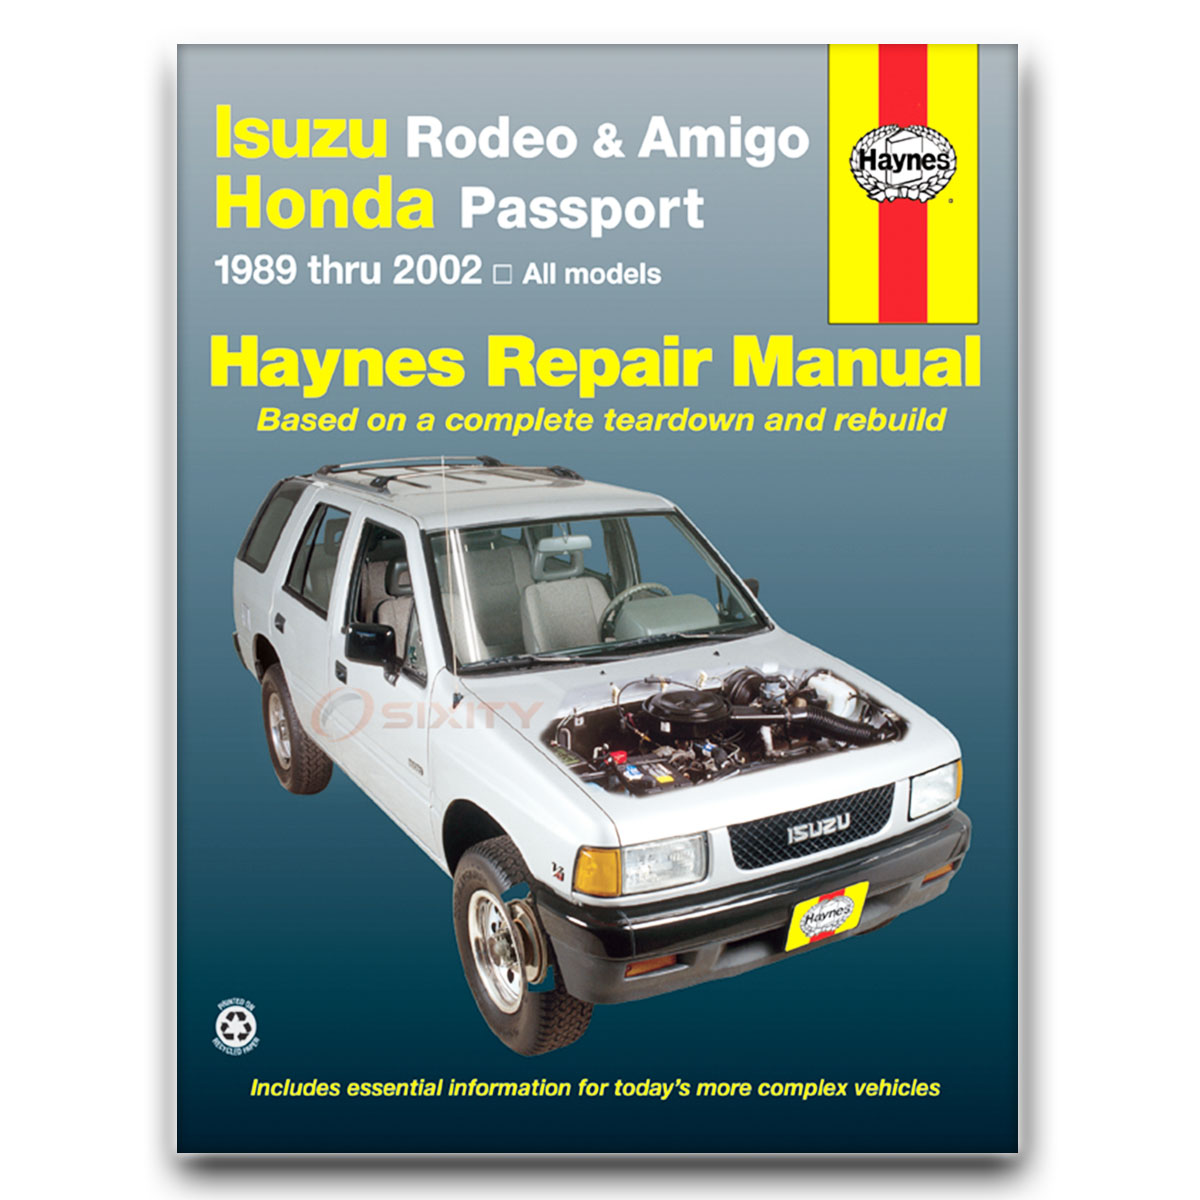 isuzu rodeo haynes repair manual s v6 ls lse xs shop service garage rh ebay com 2004 isuzu rodeo owners manual pdf isuzu rodeo owners manual pdf